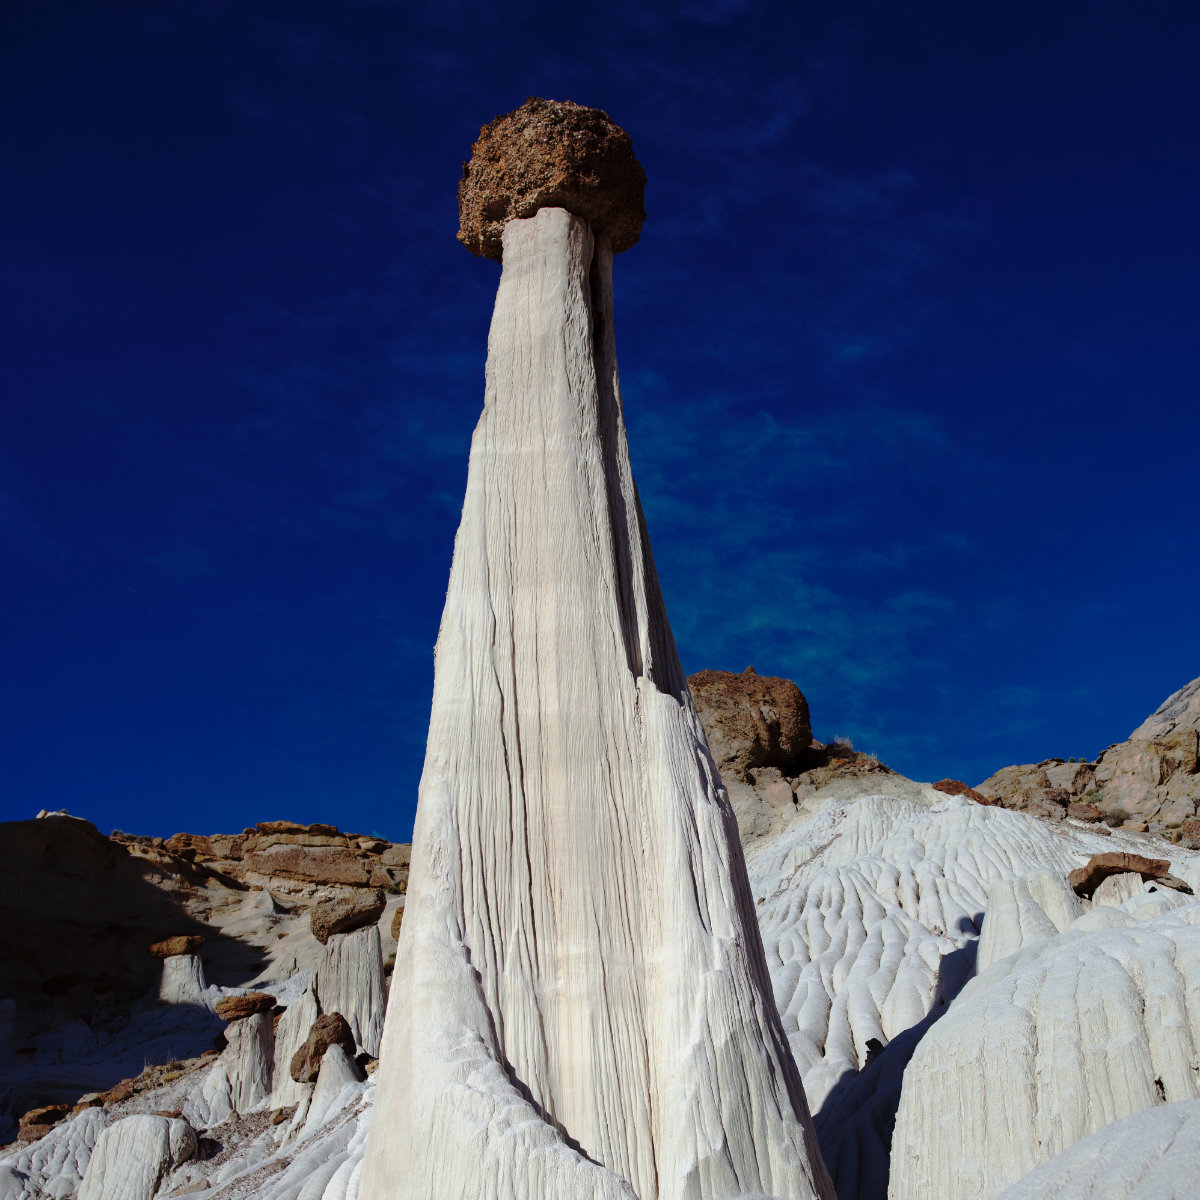 One of the large hoodoos in the area